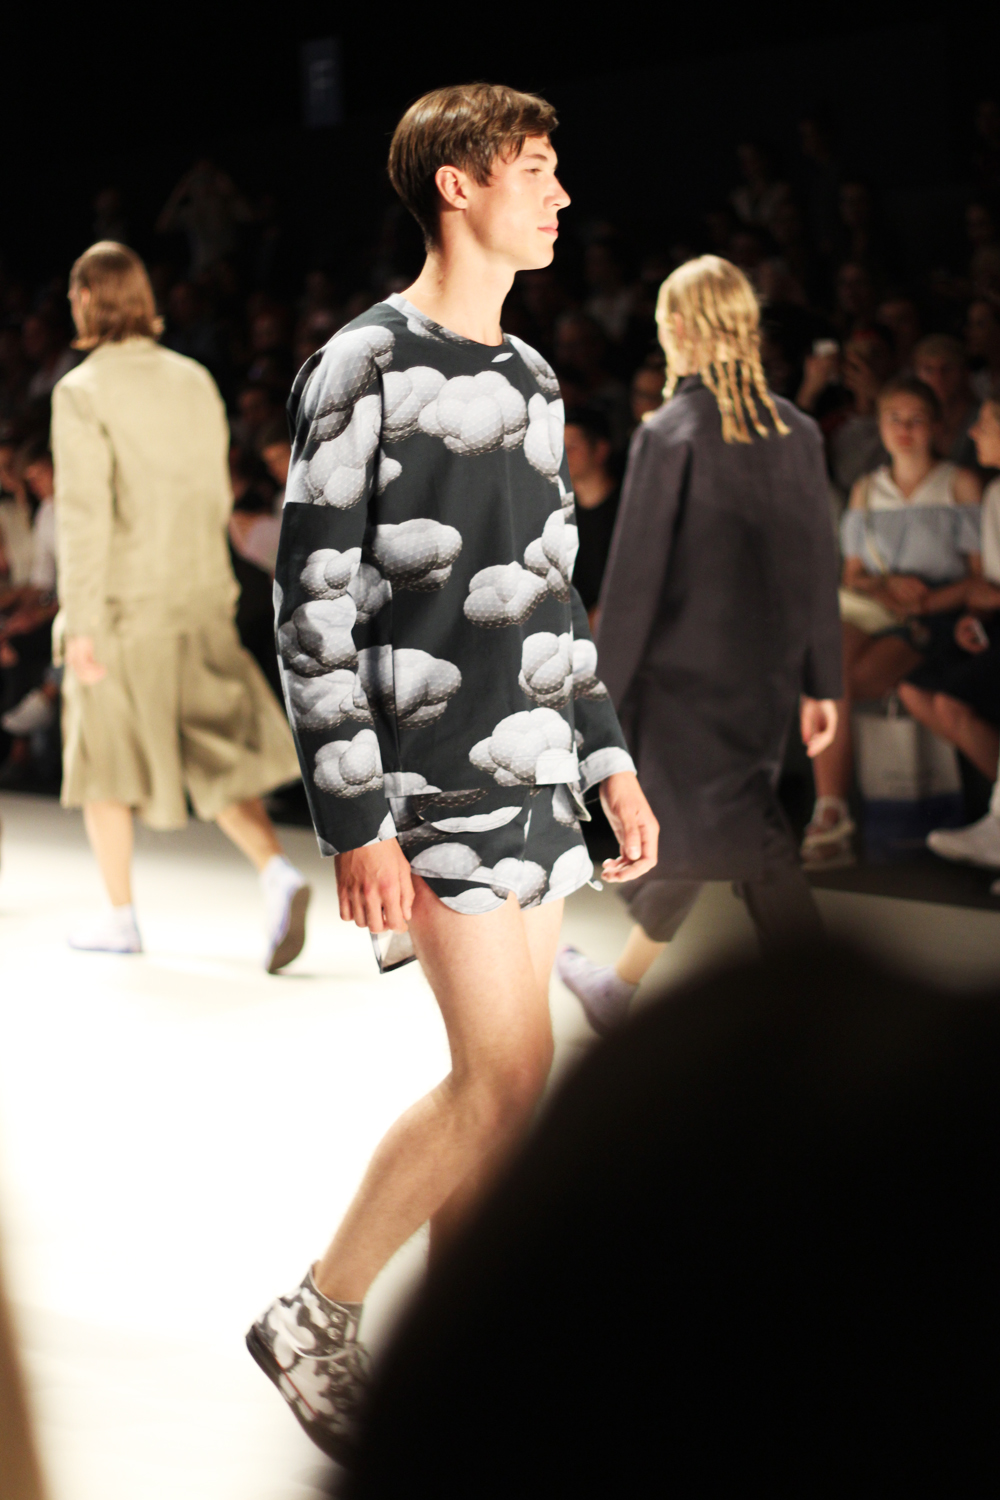 fatimayarie-berlinfashionweek-julianzigerli-menswear-runway-cloud-print-img_4244